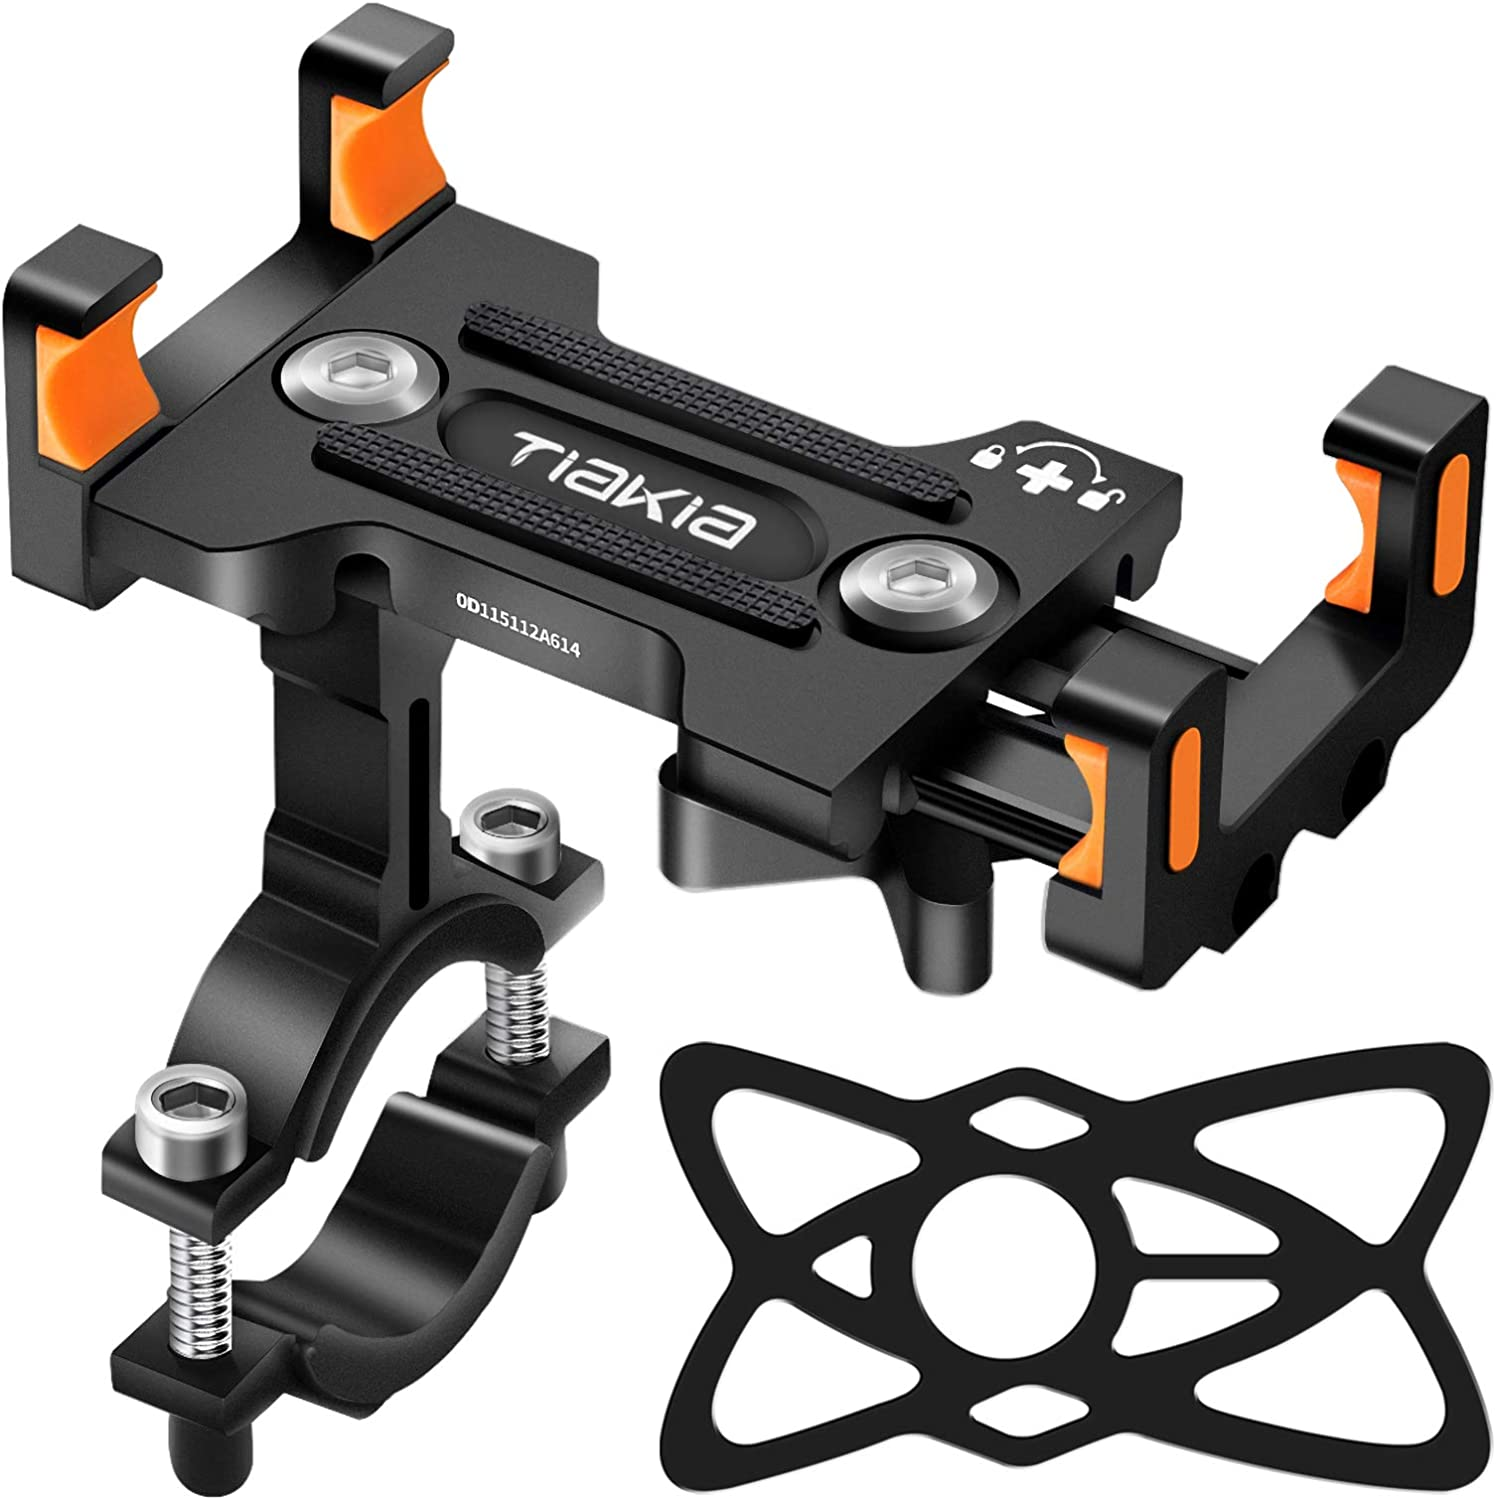 Tiakia Bike cell Phone Mount